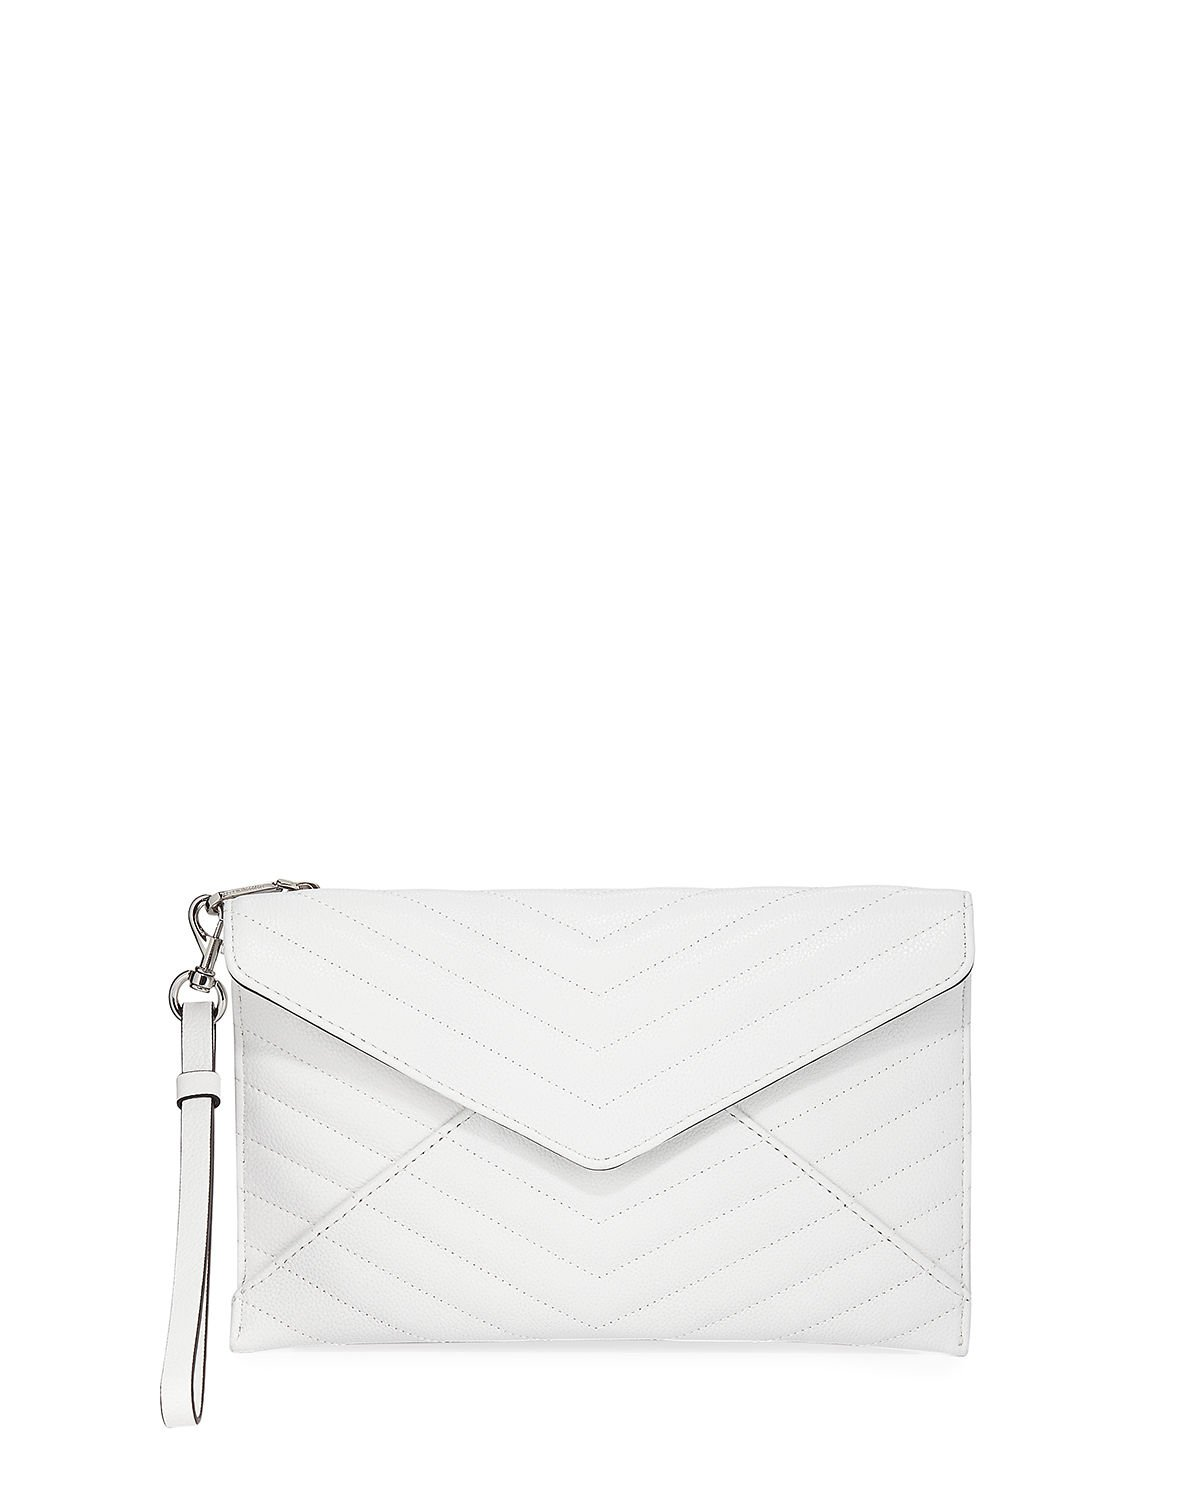 Rebecca Minkoff Leo Quilted Leather Wristlet Clutch